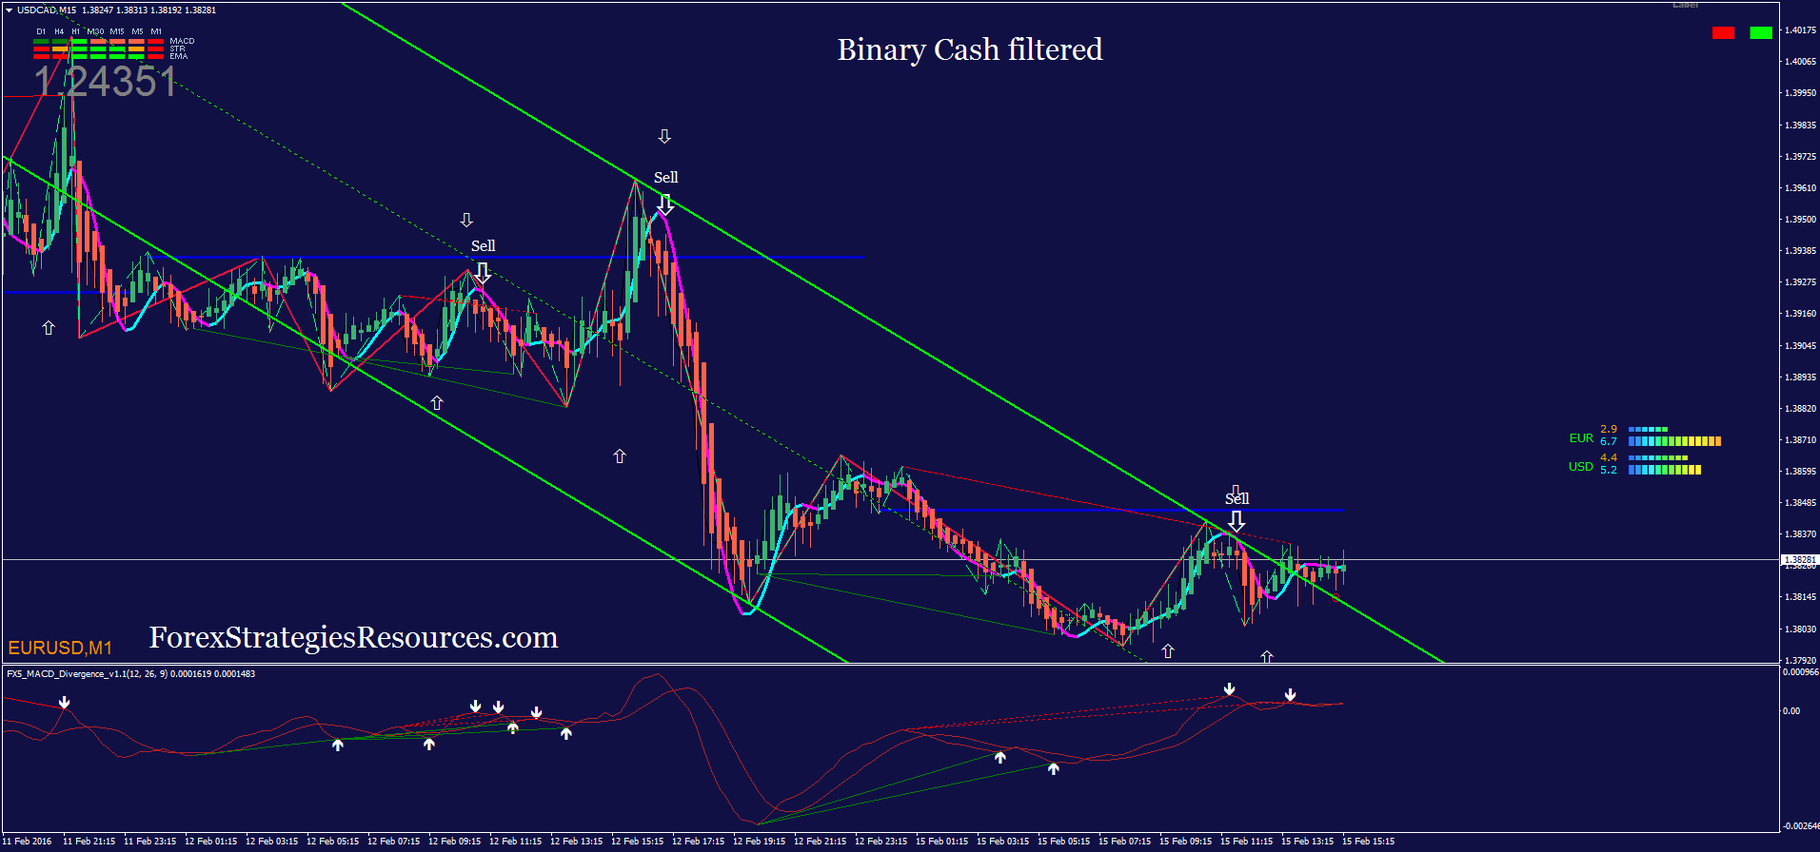 Binary Cash Filtered Forex Strategies Resources Diagram Of Pullback Or Angle And Launch For Catapult 181